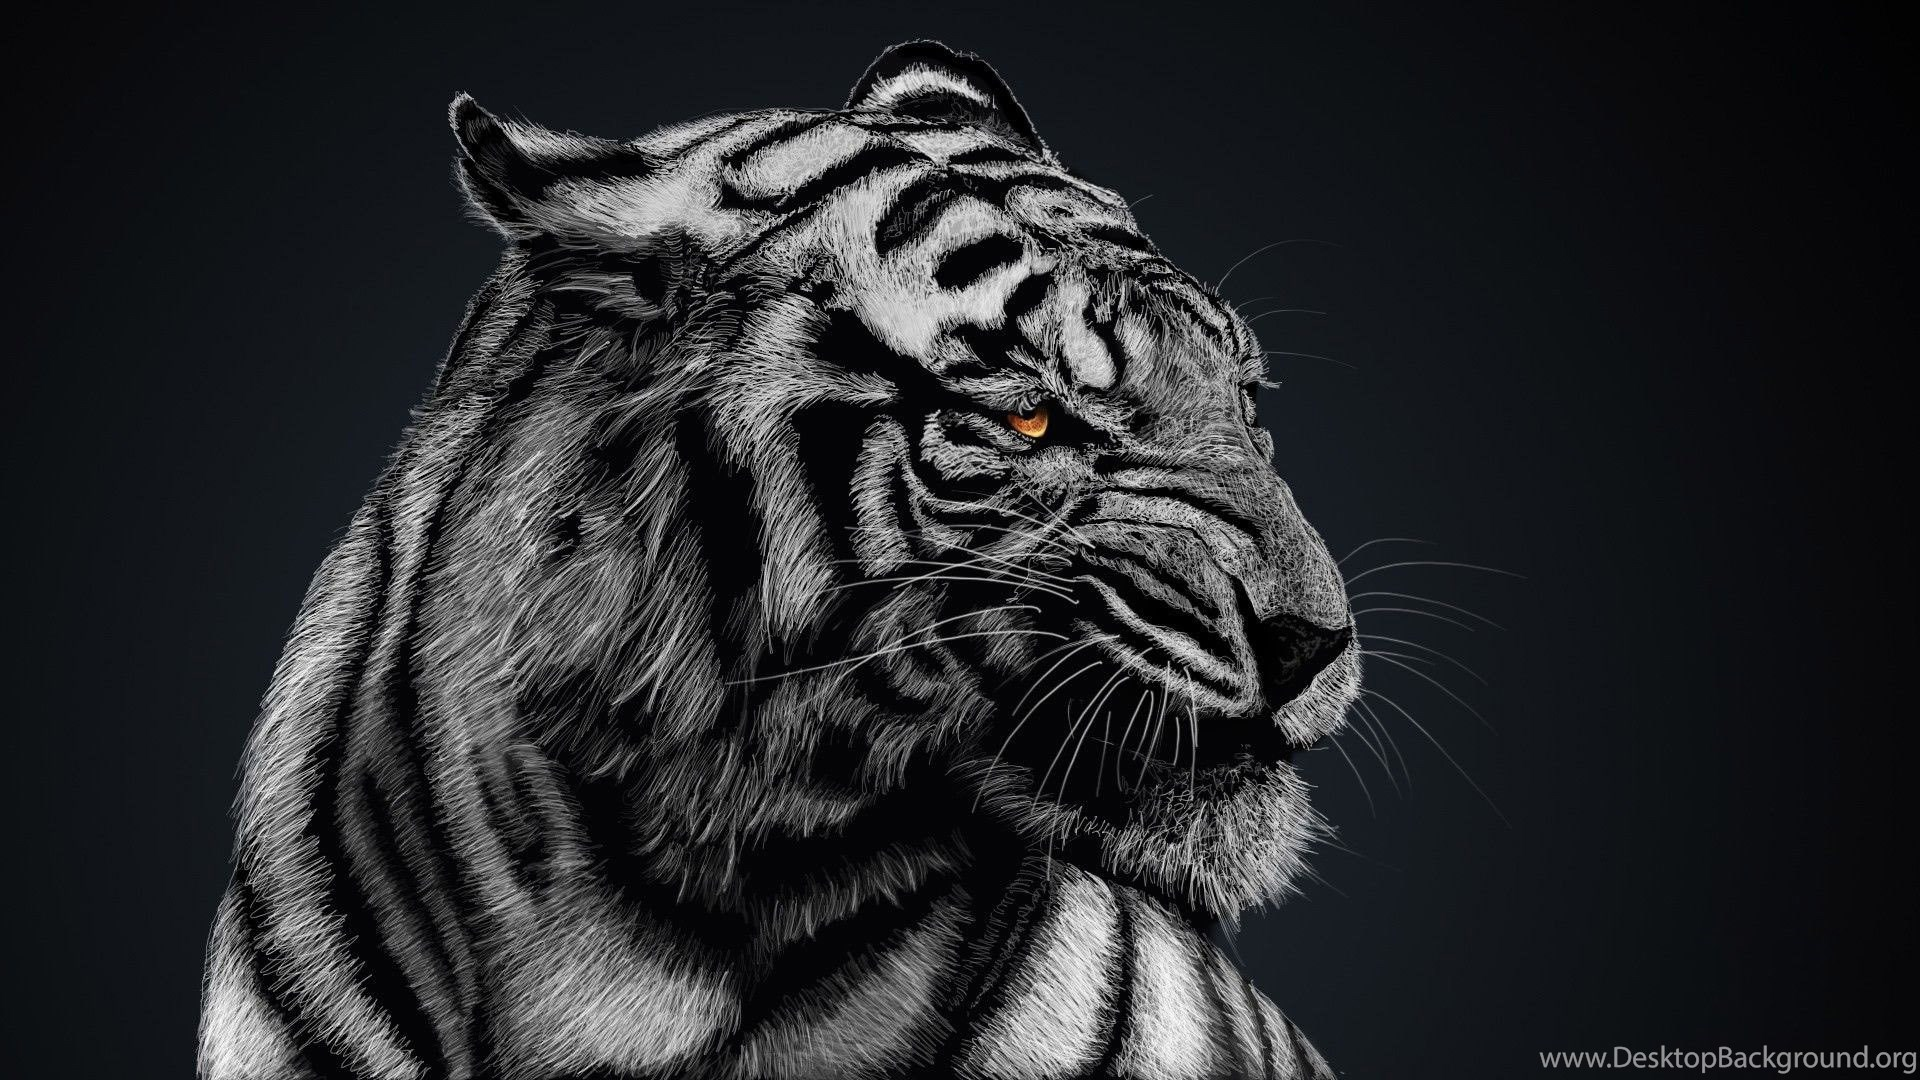 Wonderful Wallpaper High Quality Tiger - 705266_black-and-white-tiger-wallpapers-high-quality-animal-wallpapers_1920x1080_h  Gallery_545458.jpg